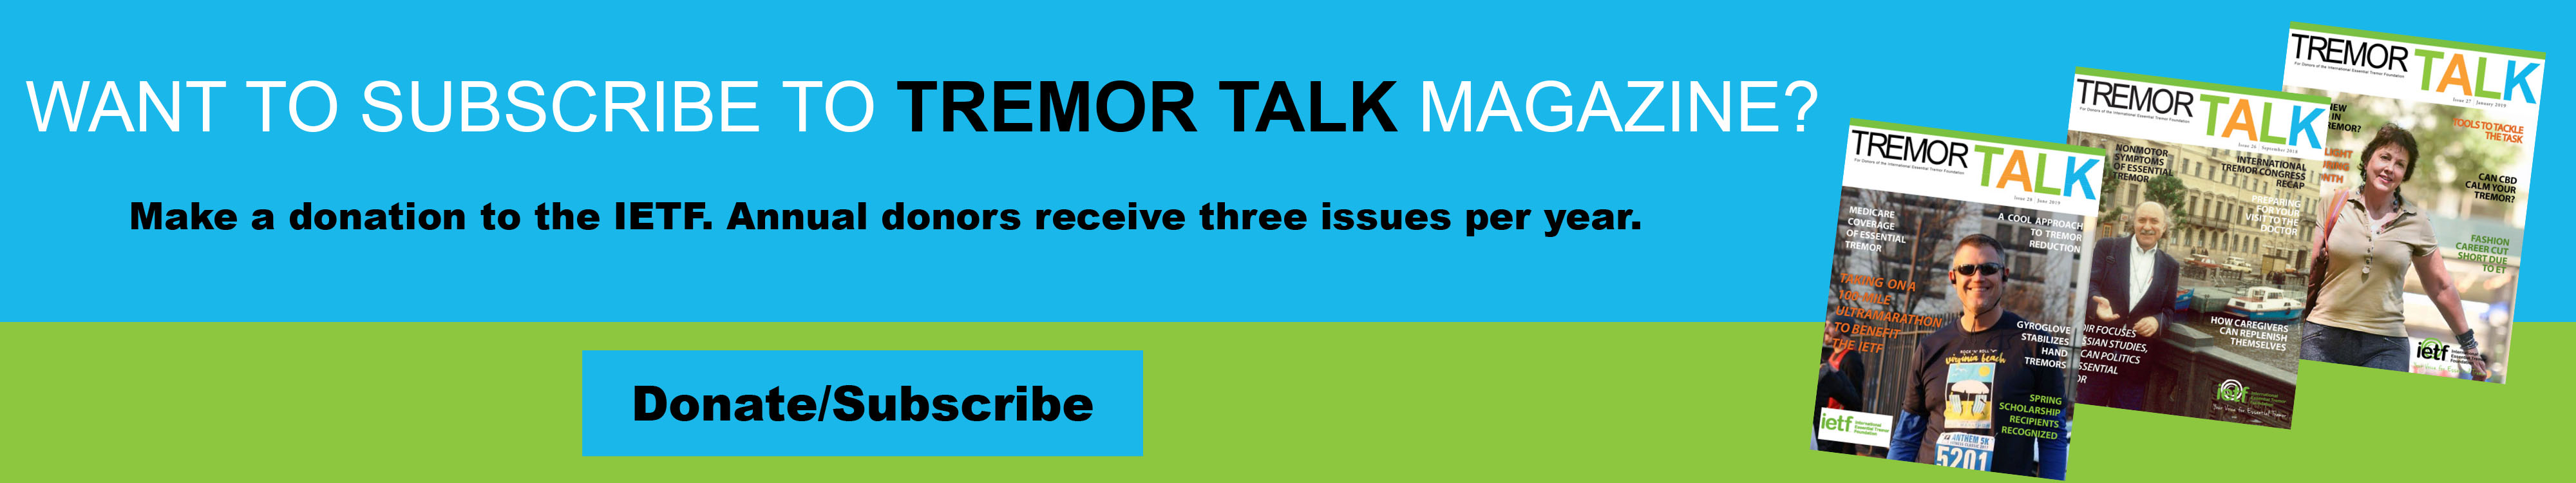 Tremor Talk Magazine Subscription